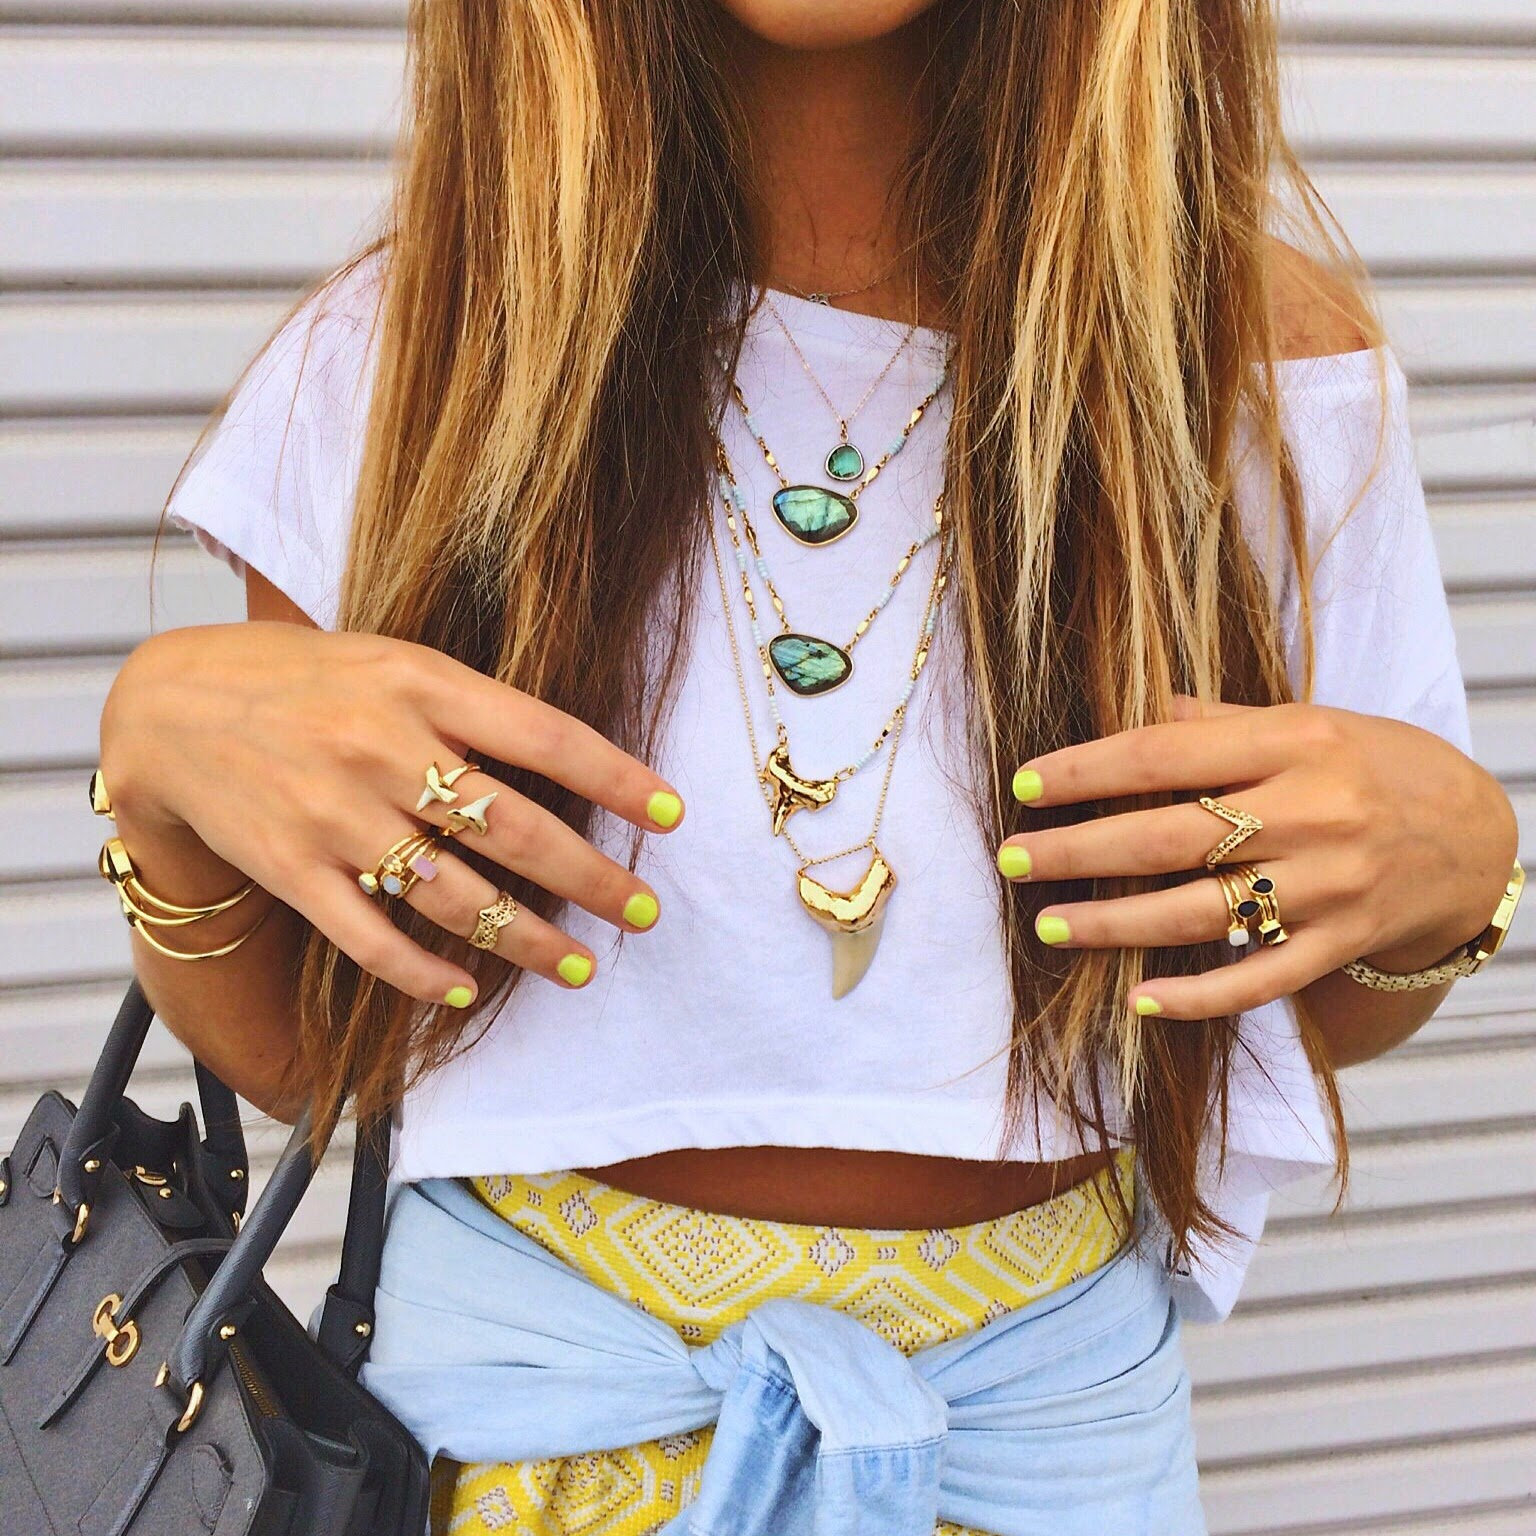 Bold Nails + Layered Necklaces // www.brokeandchic.com